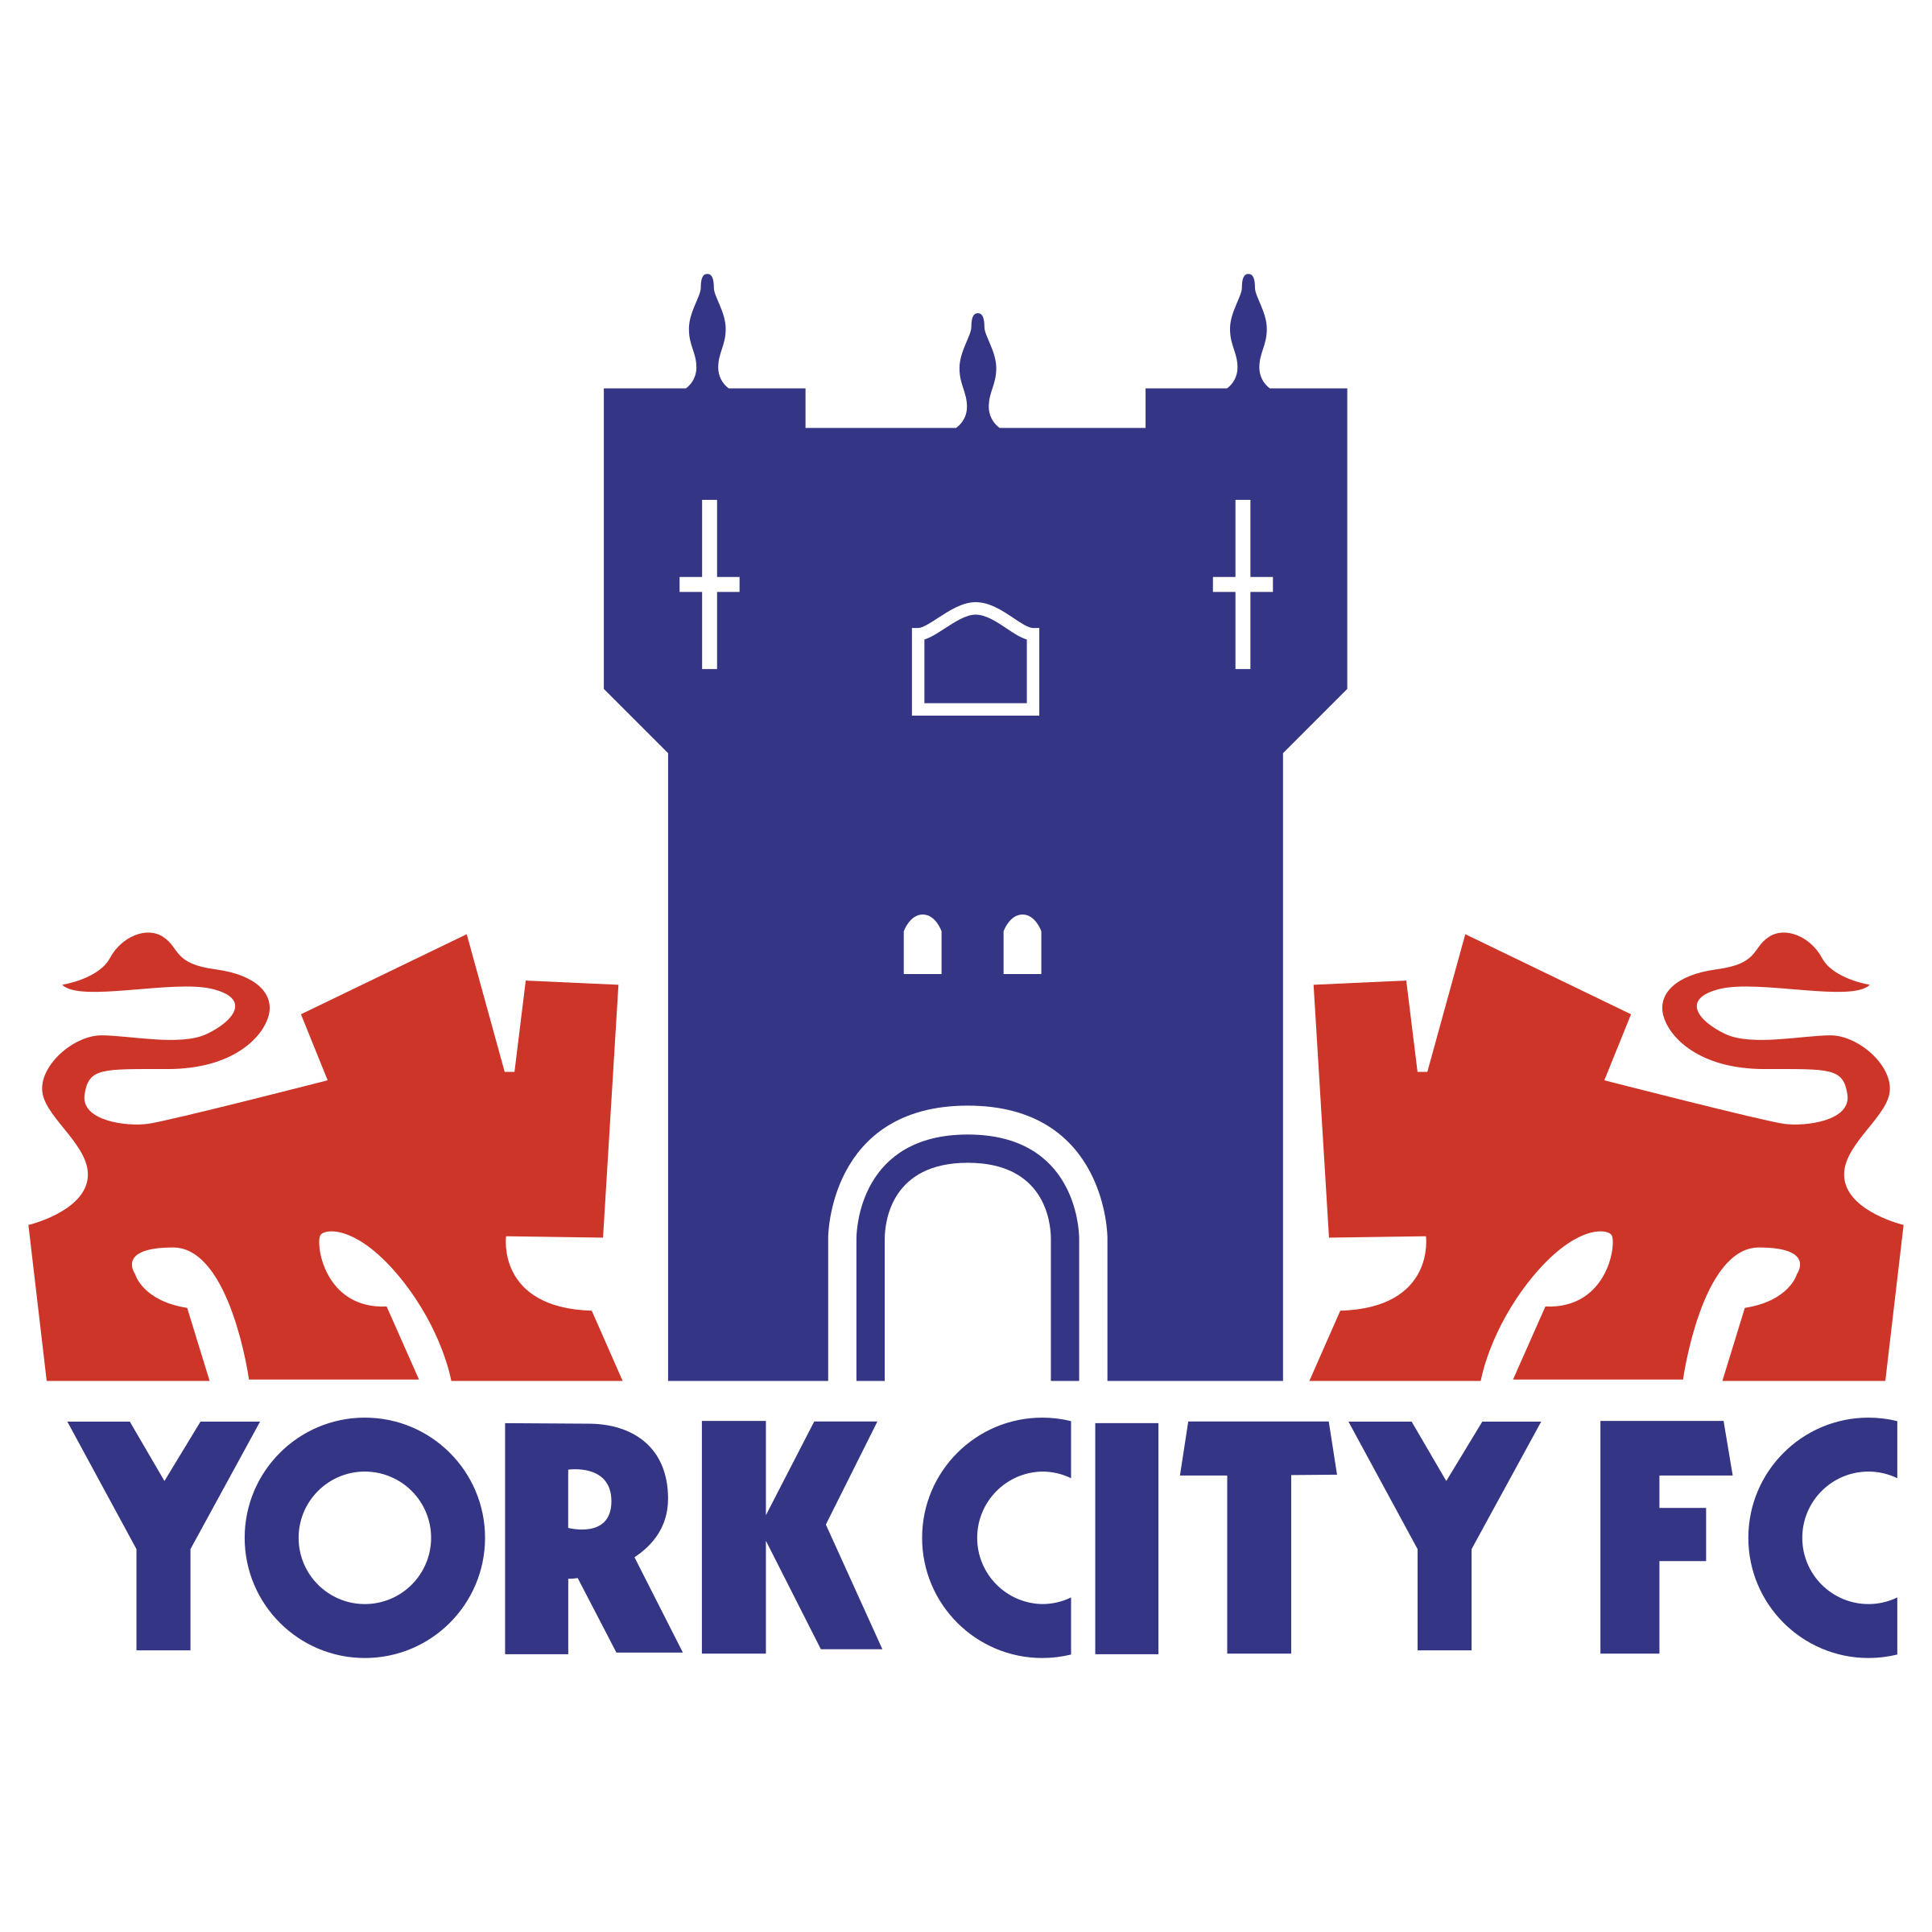 https://cdn.freebiesupply.com/logos/large/2x/york-city-fc-logo-png-transparent.png